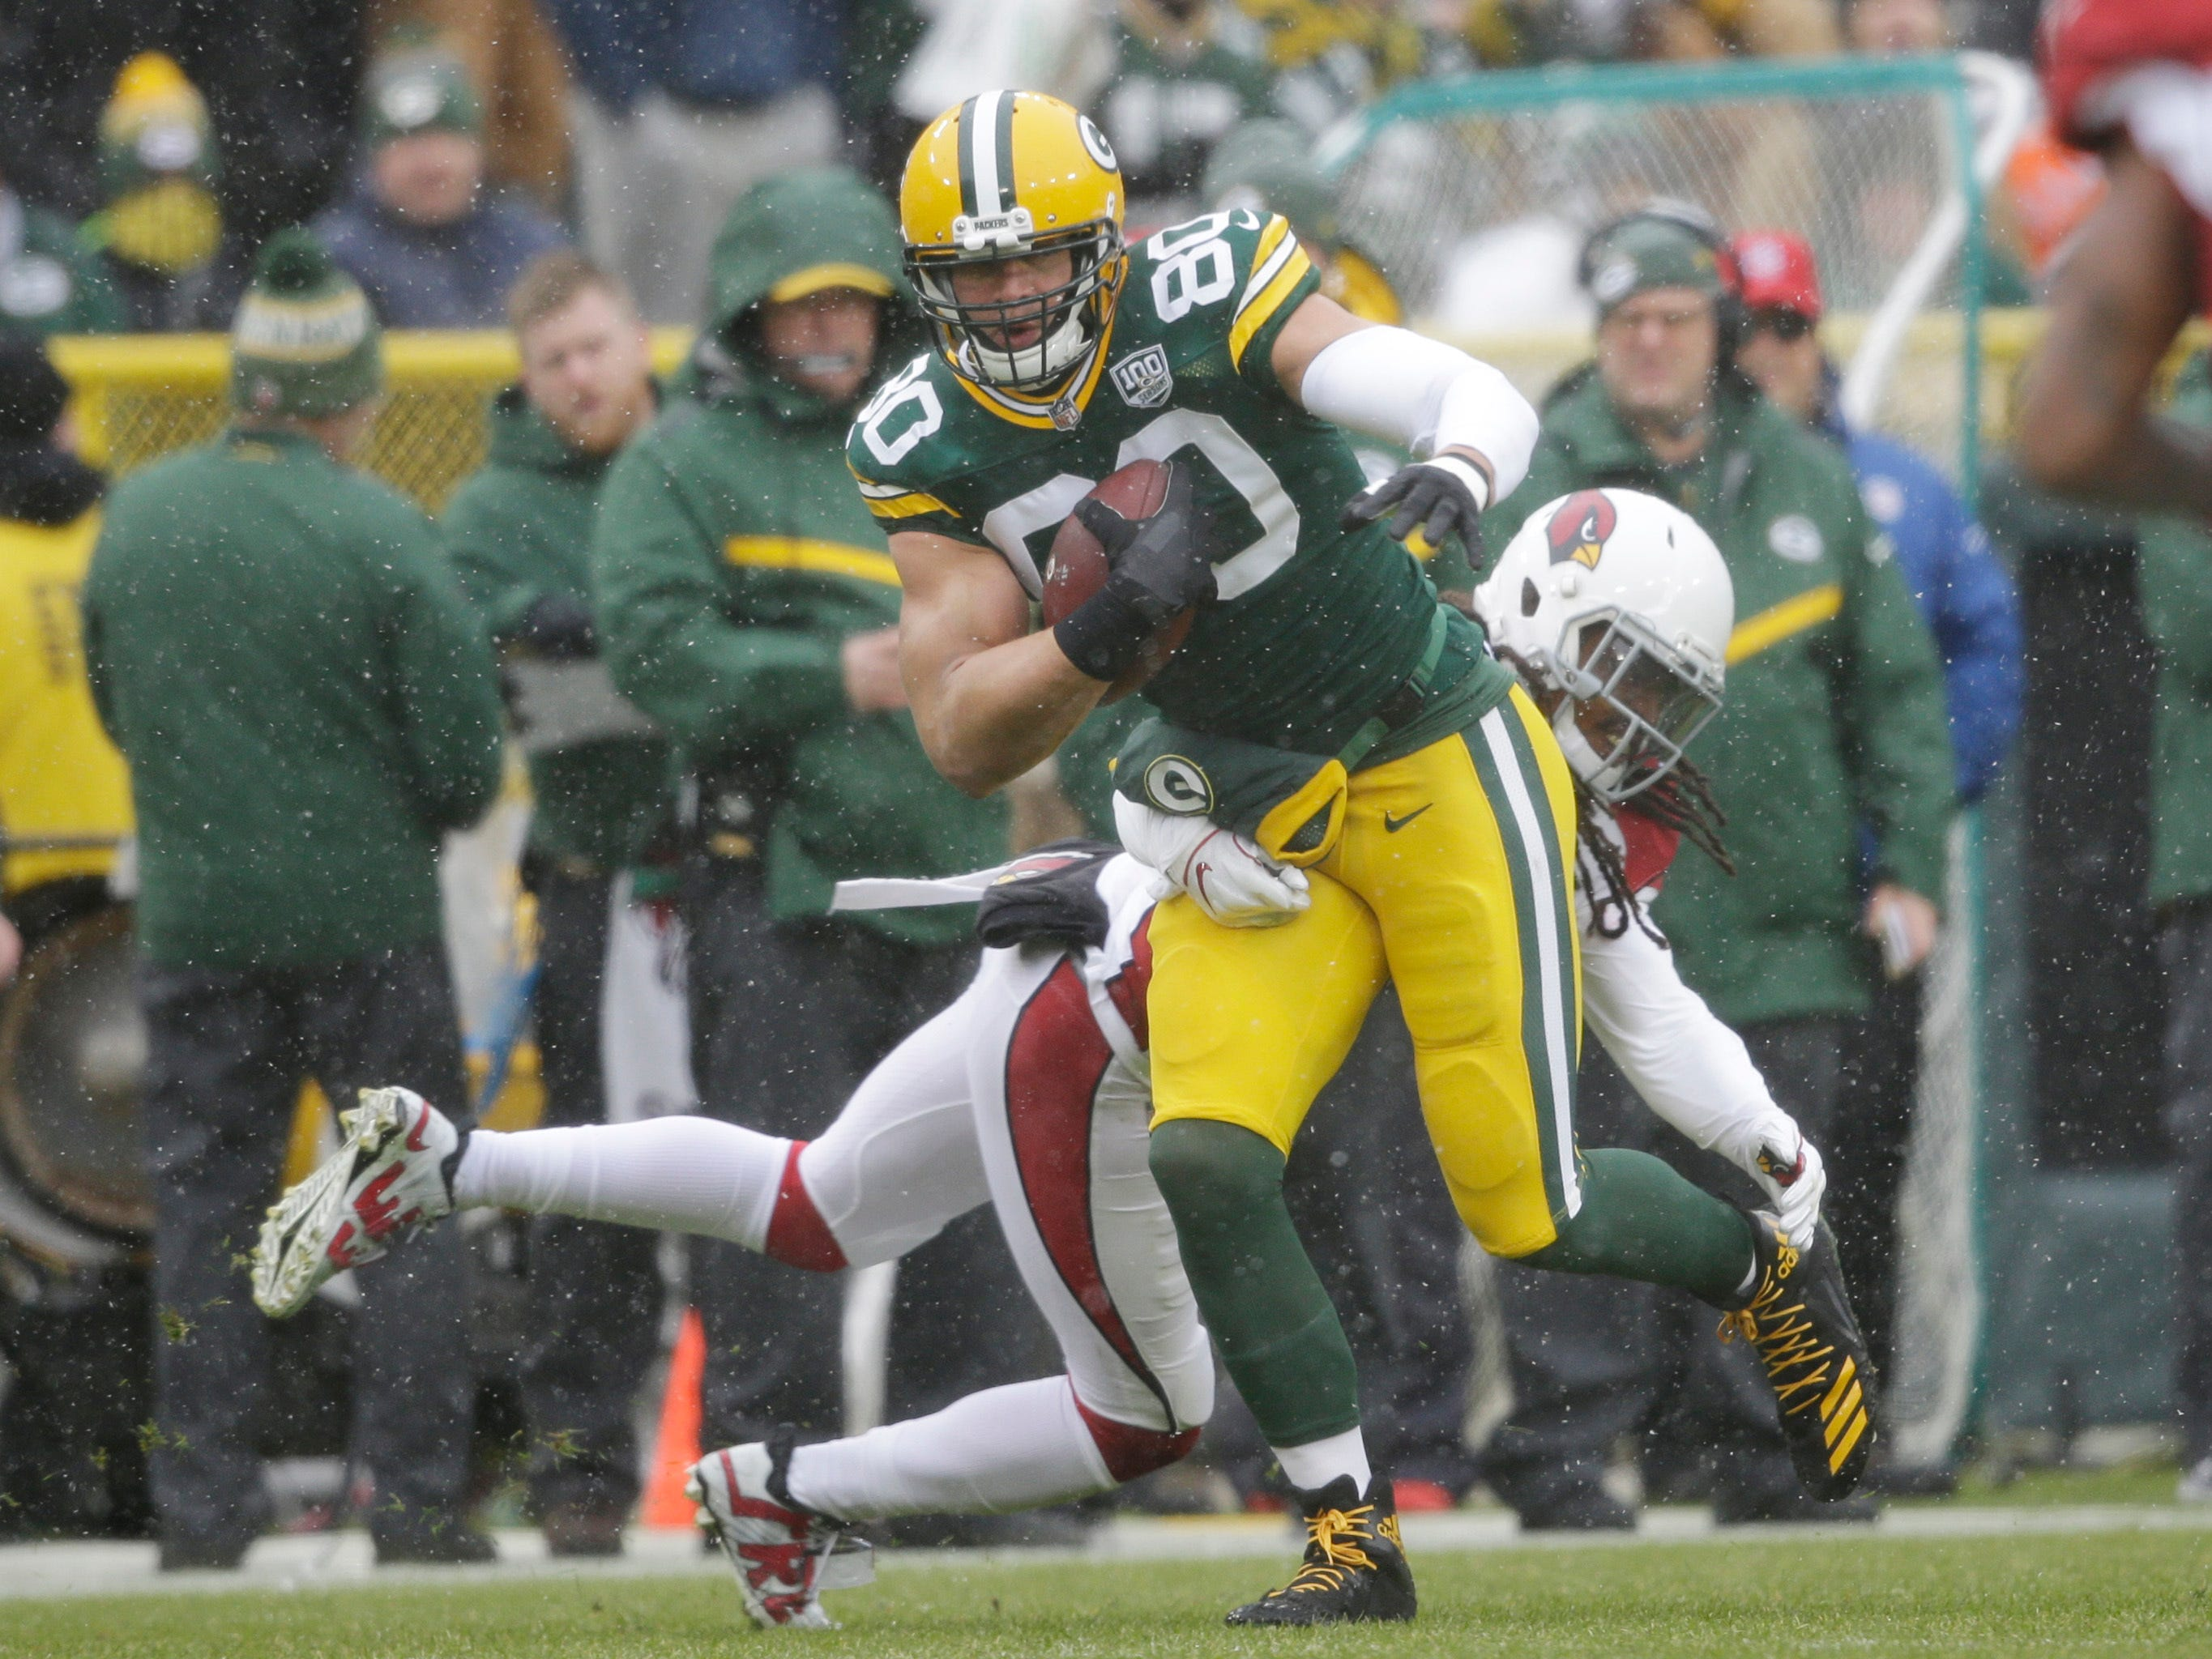 Green Bay Packers tight end Jimmy Graham runs after making a catch against the Arizona Cardinals during the first half of an NFL football game Sunday, Dec. 2, 2018, in Green Bay, Wis. (AP Photo/Jeffrey Phelps)